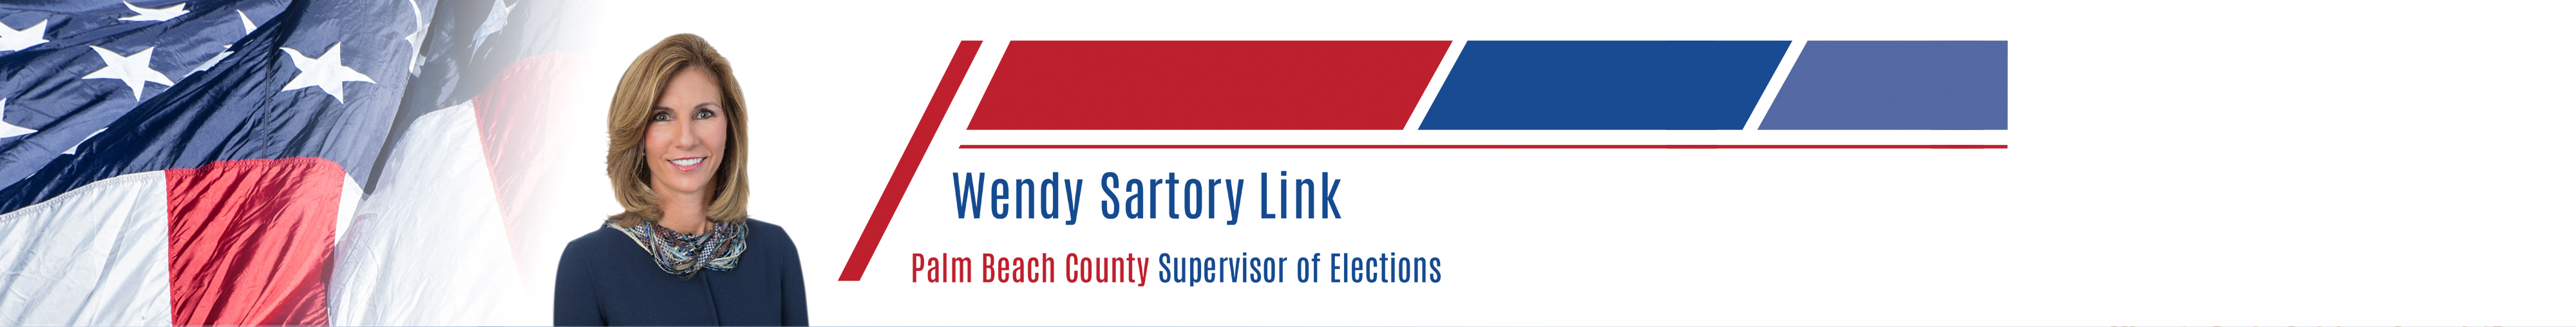 Wendy Sartory Link Supervisor of Elections Palm Beach County